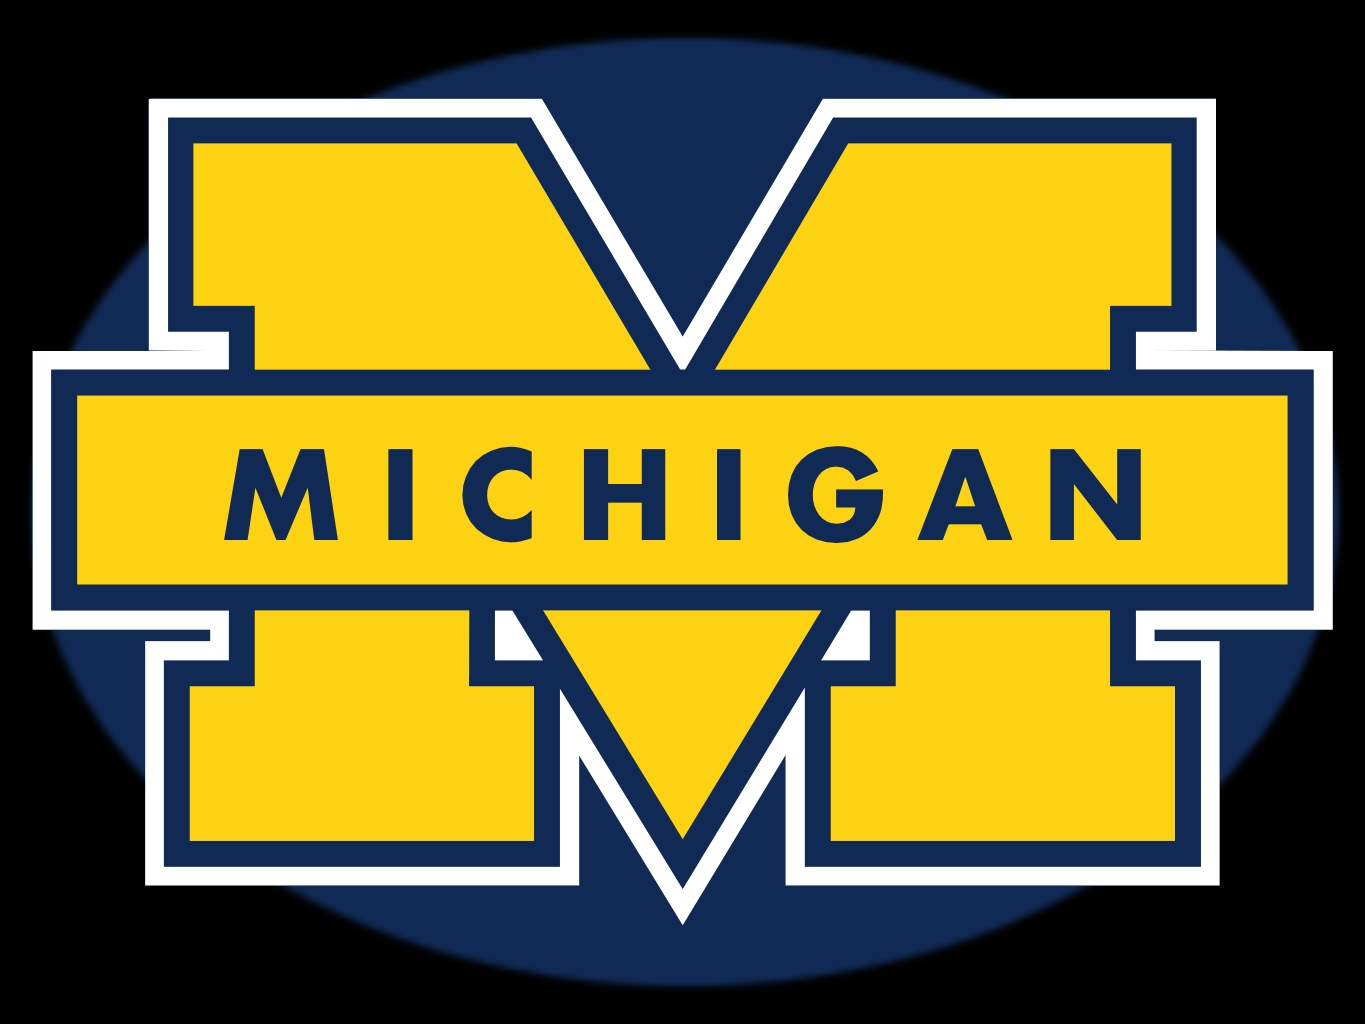 Michigan wolverines clipart freeuse download Free Wolverine Football Cliparts, Download Free Clip Art ... freeuse download